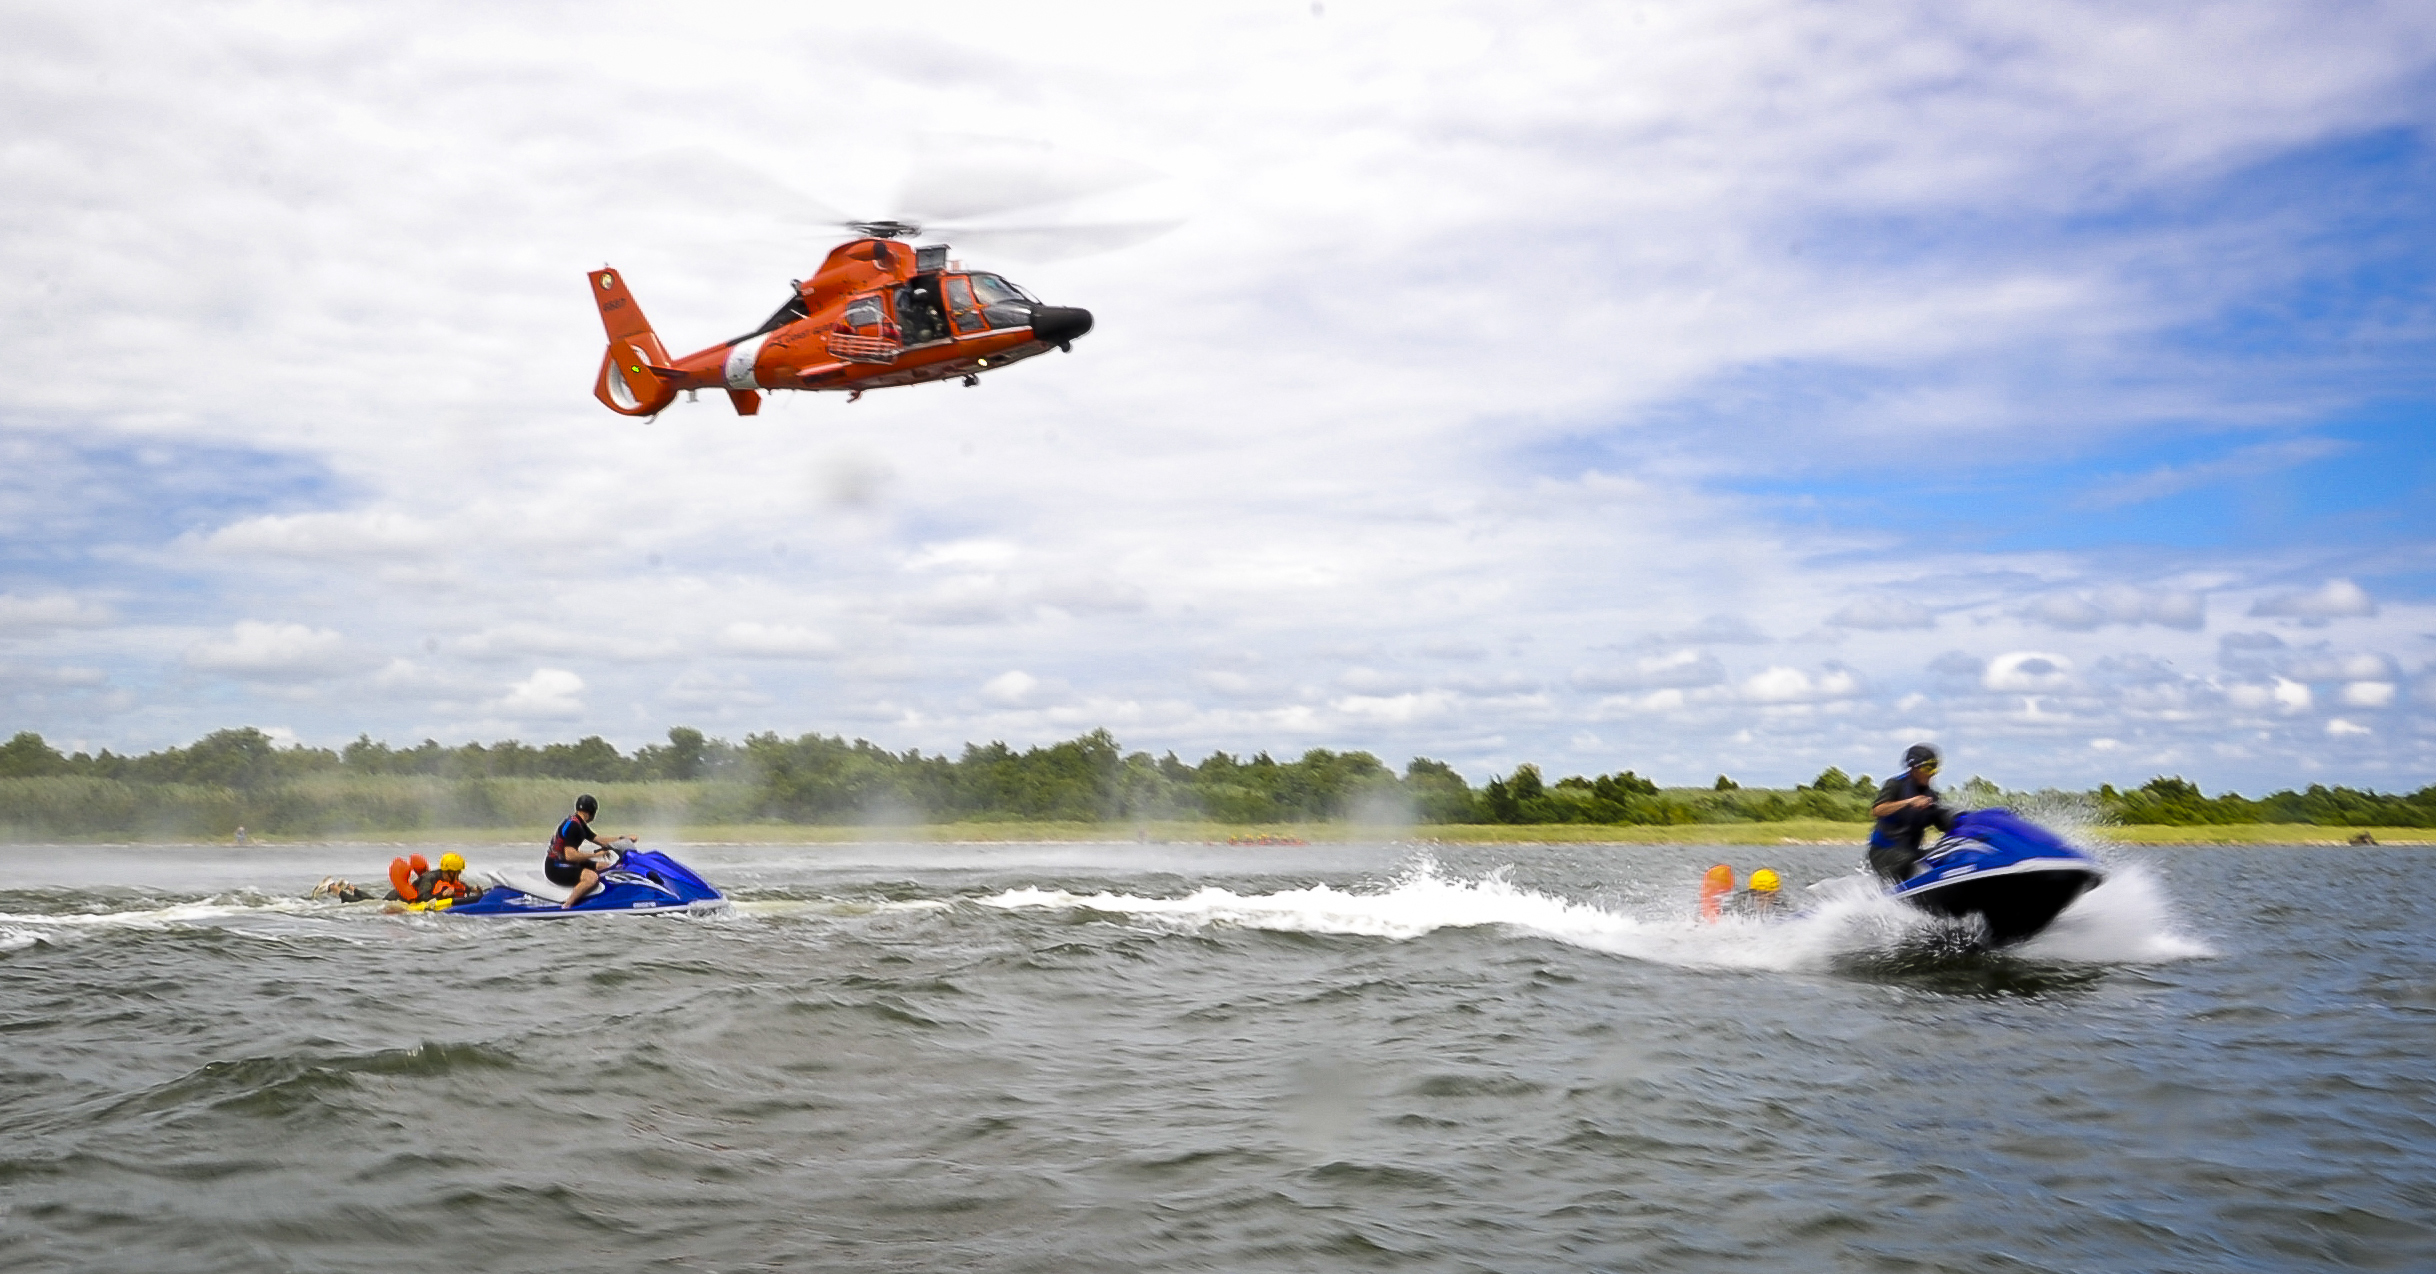 photos air force coast guard perform water survival training